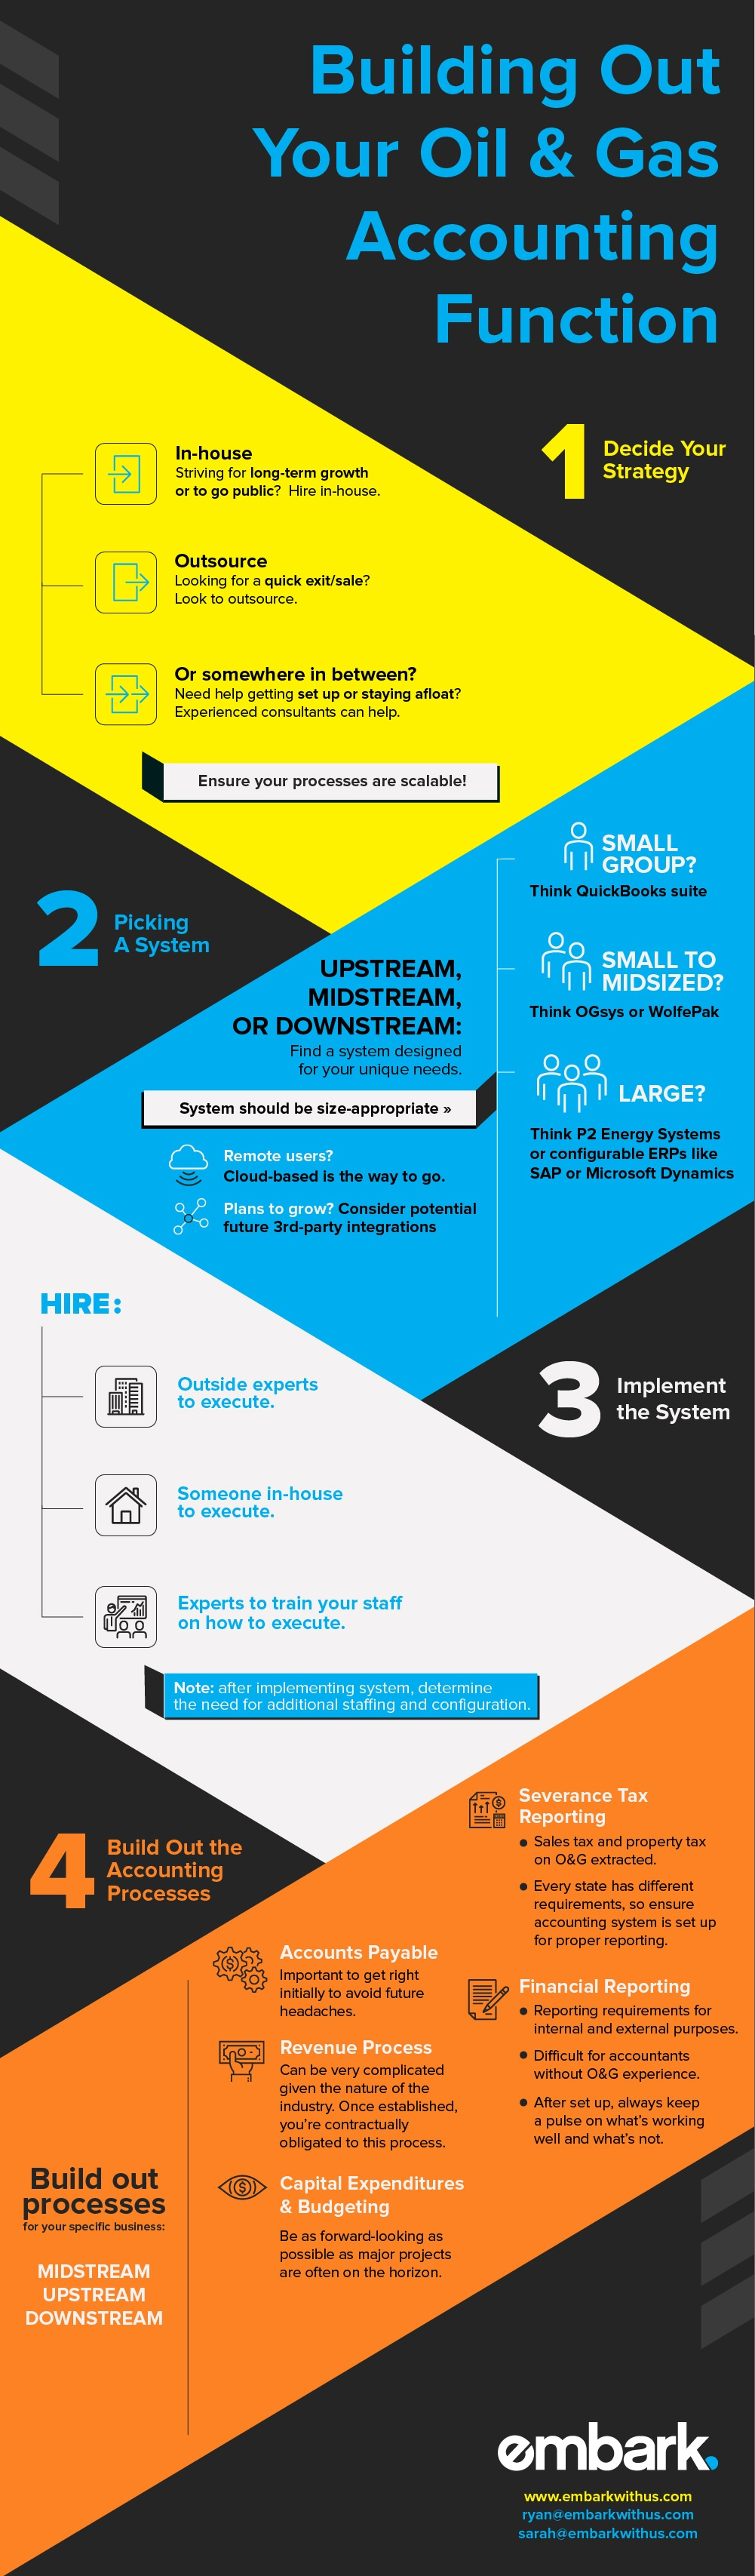 embark-accounting-subjects-infographic